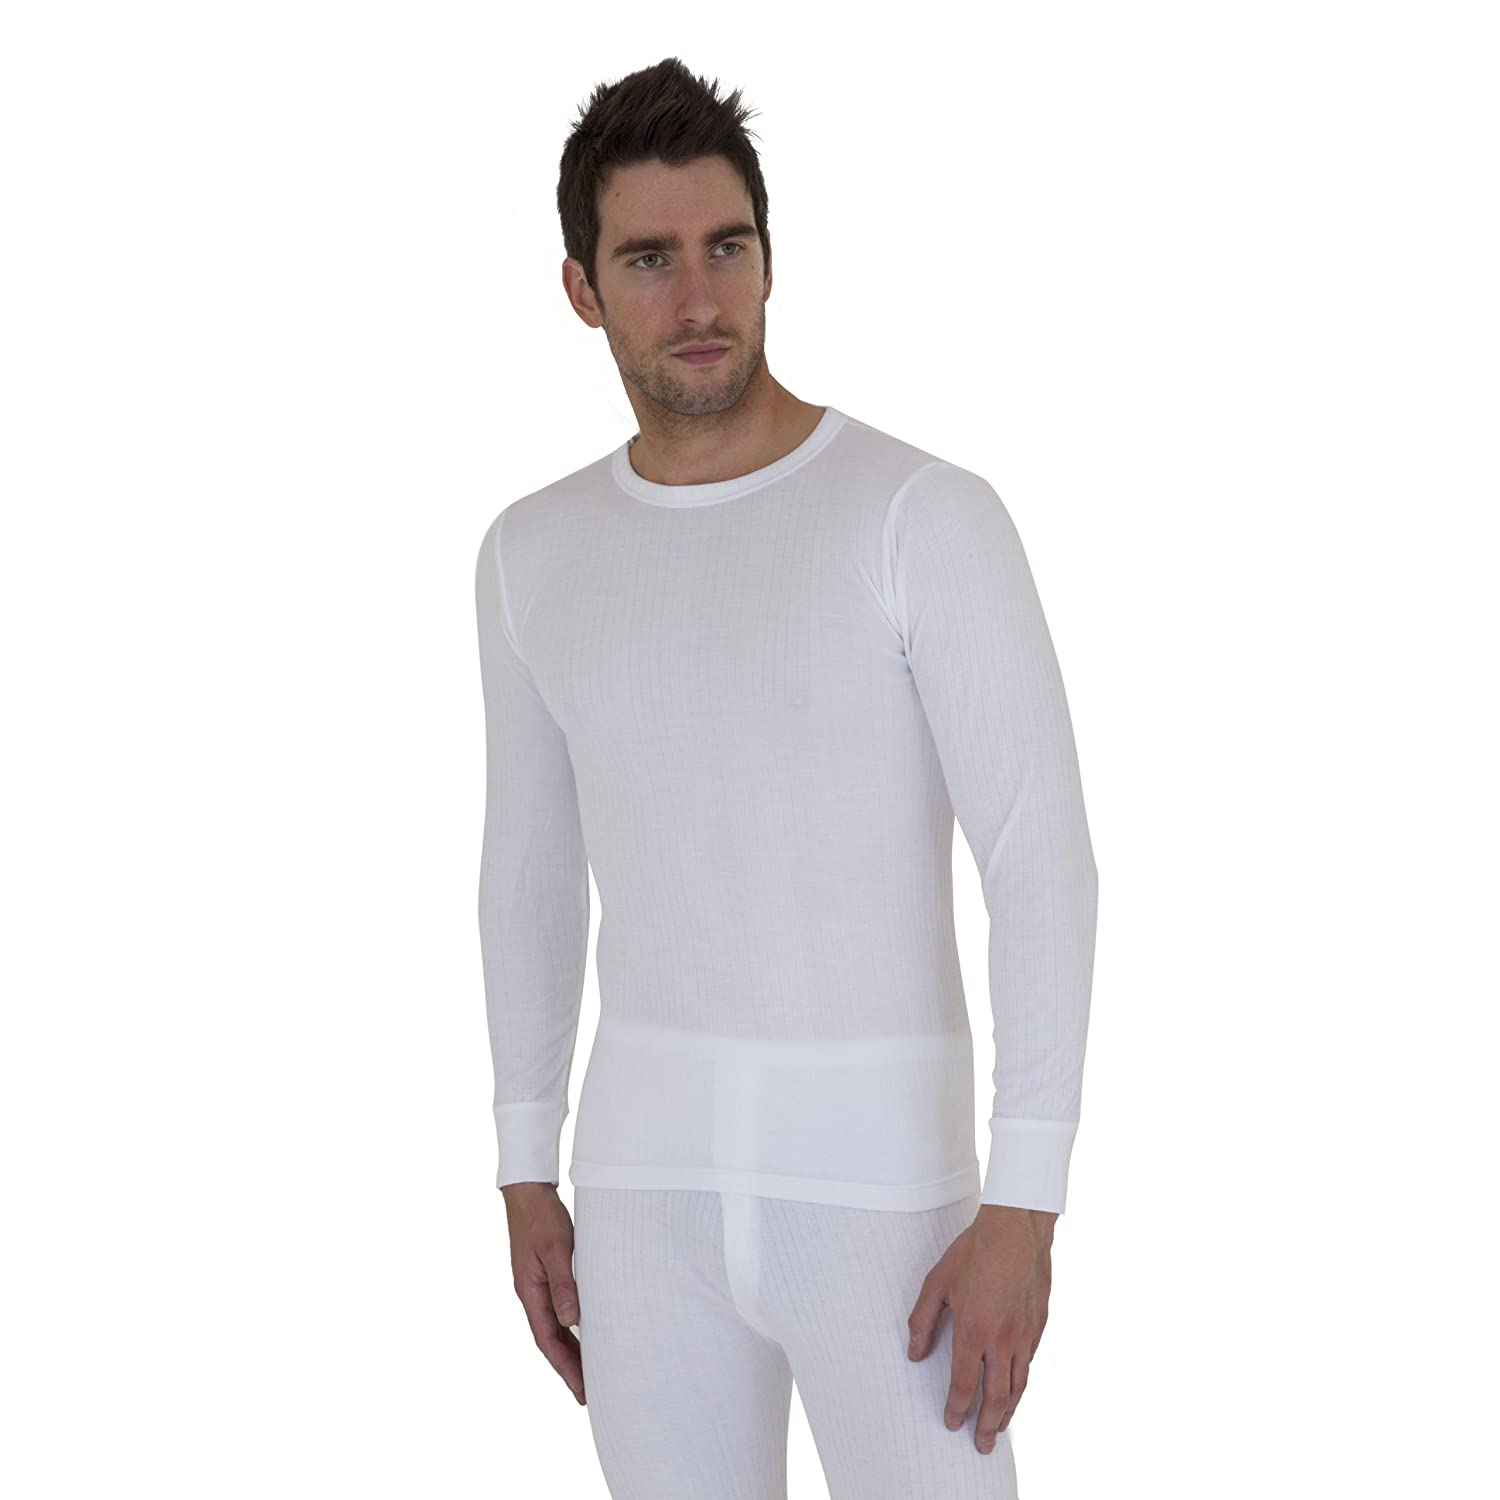 Mens Thermal Underwear Long Sleeve T Shirt Top Polyviscose Range (British Made) Universal Textiles